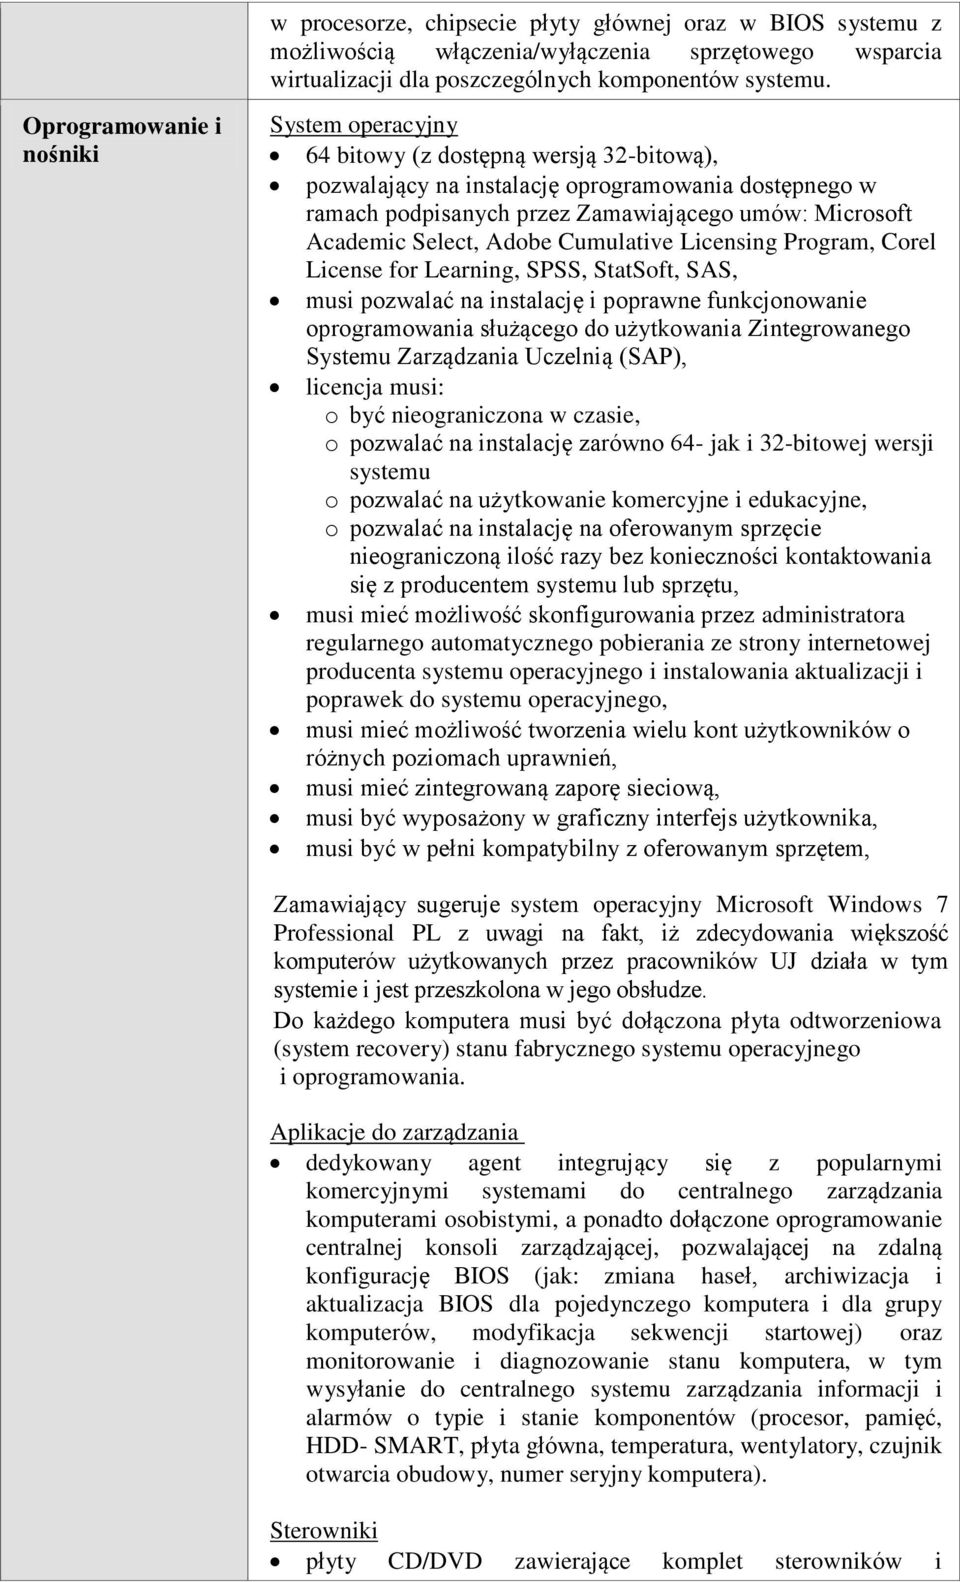 Academic Select, Adobe Cumulative Licensing Program, Corel License for Learning, SPSS, StatSoft, SAS, musi pozwalać na instalację i poprawne funkcjonowanie oprogramowania służącego do użytkowania